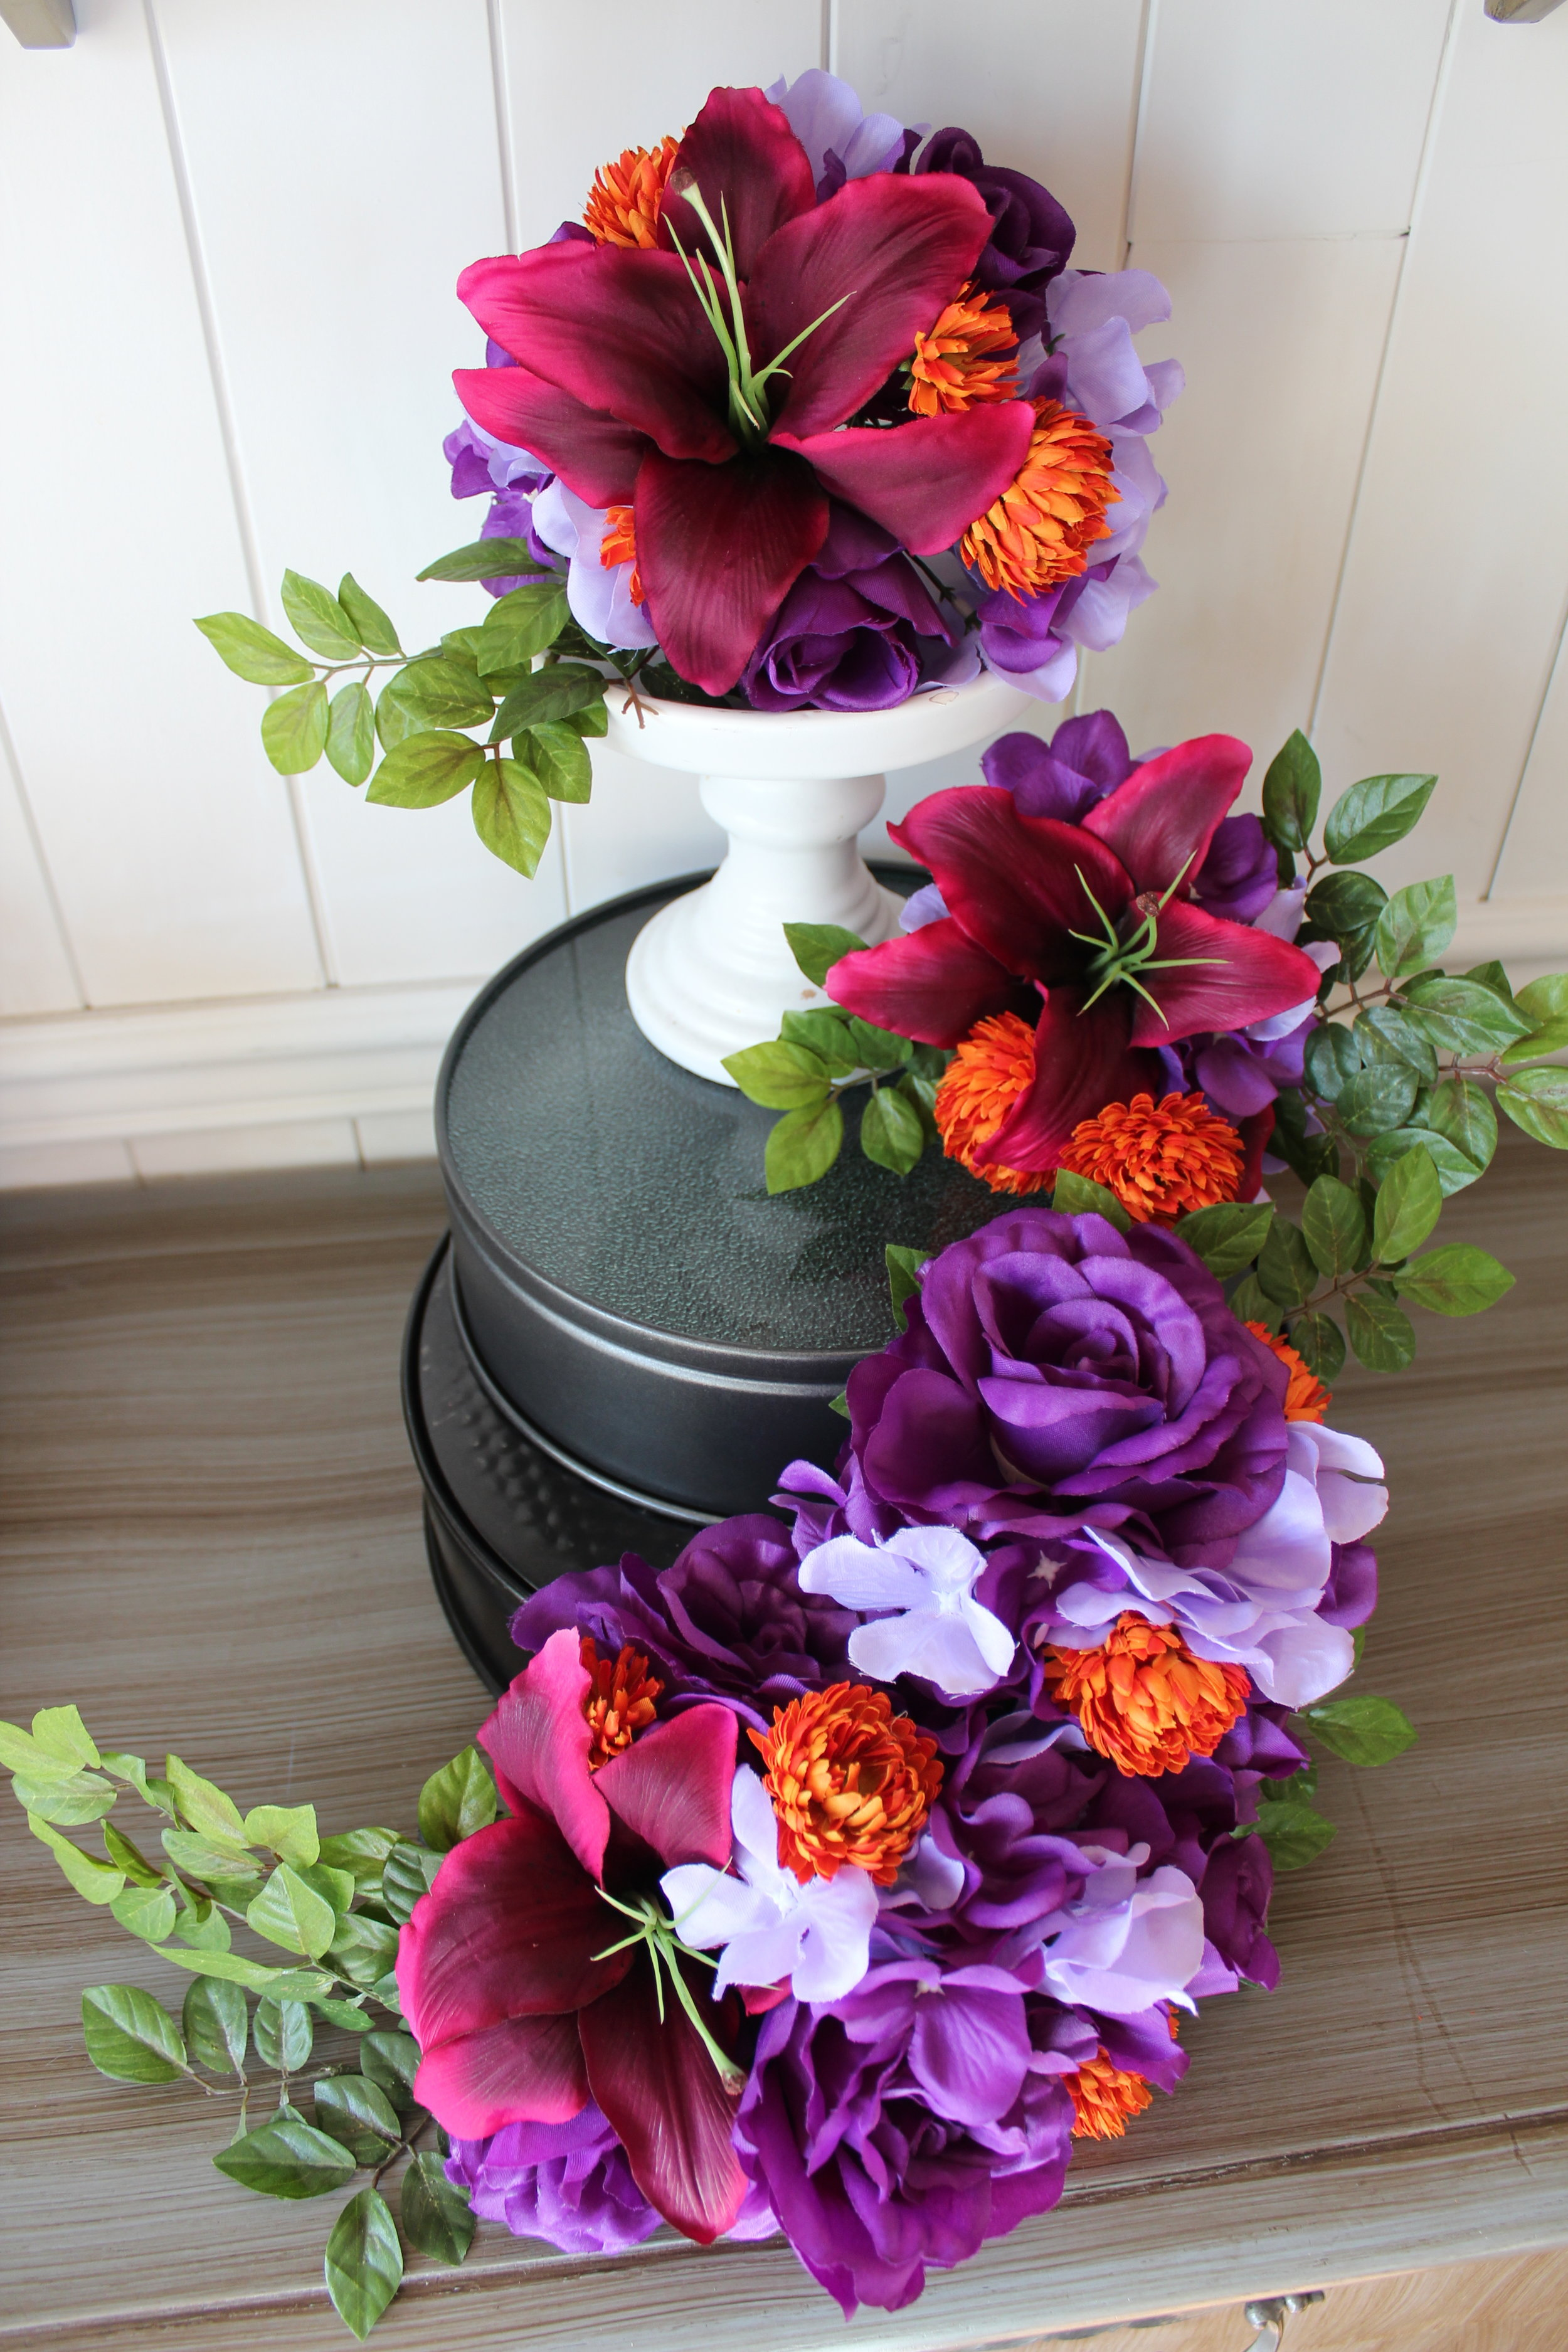 Not exactly a Pinterest-worthy setup, but shows off the beautiful cascade of flowers that will be added to their wedding cake.